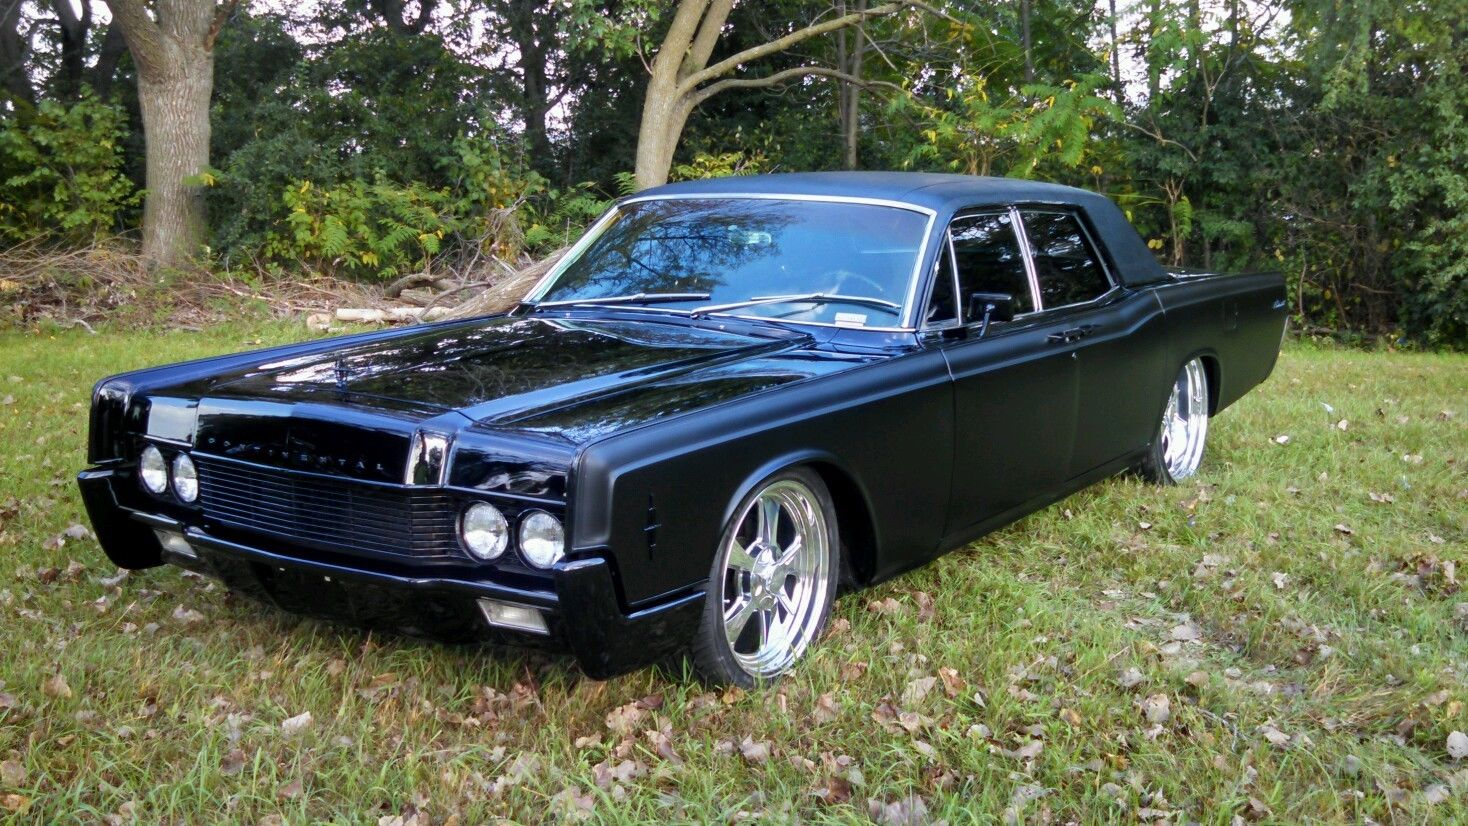 ONE OF A KIND 1966 Lincoln Continental 66 67 68 69